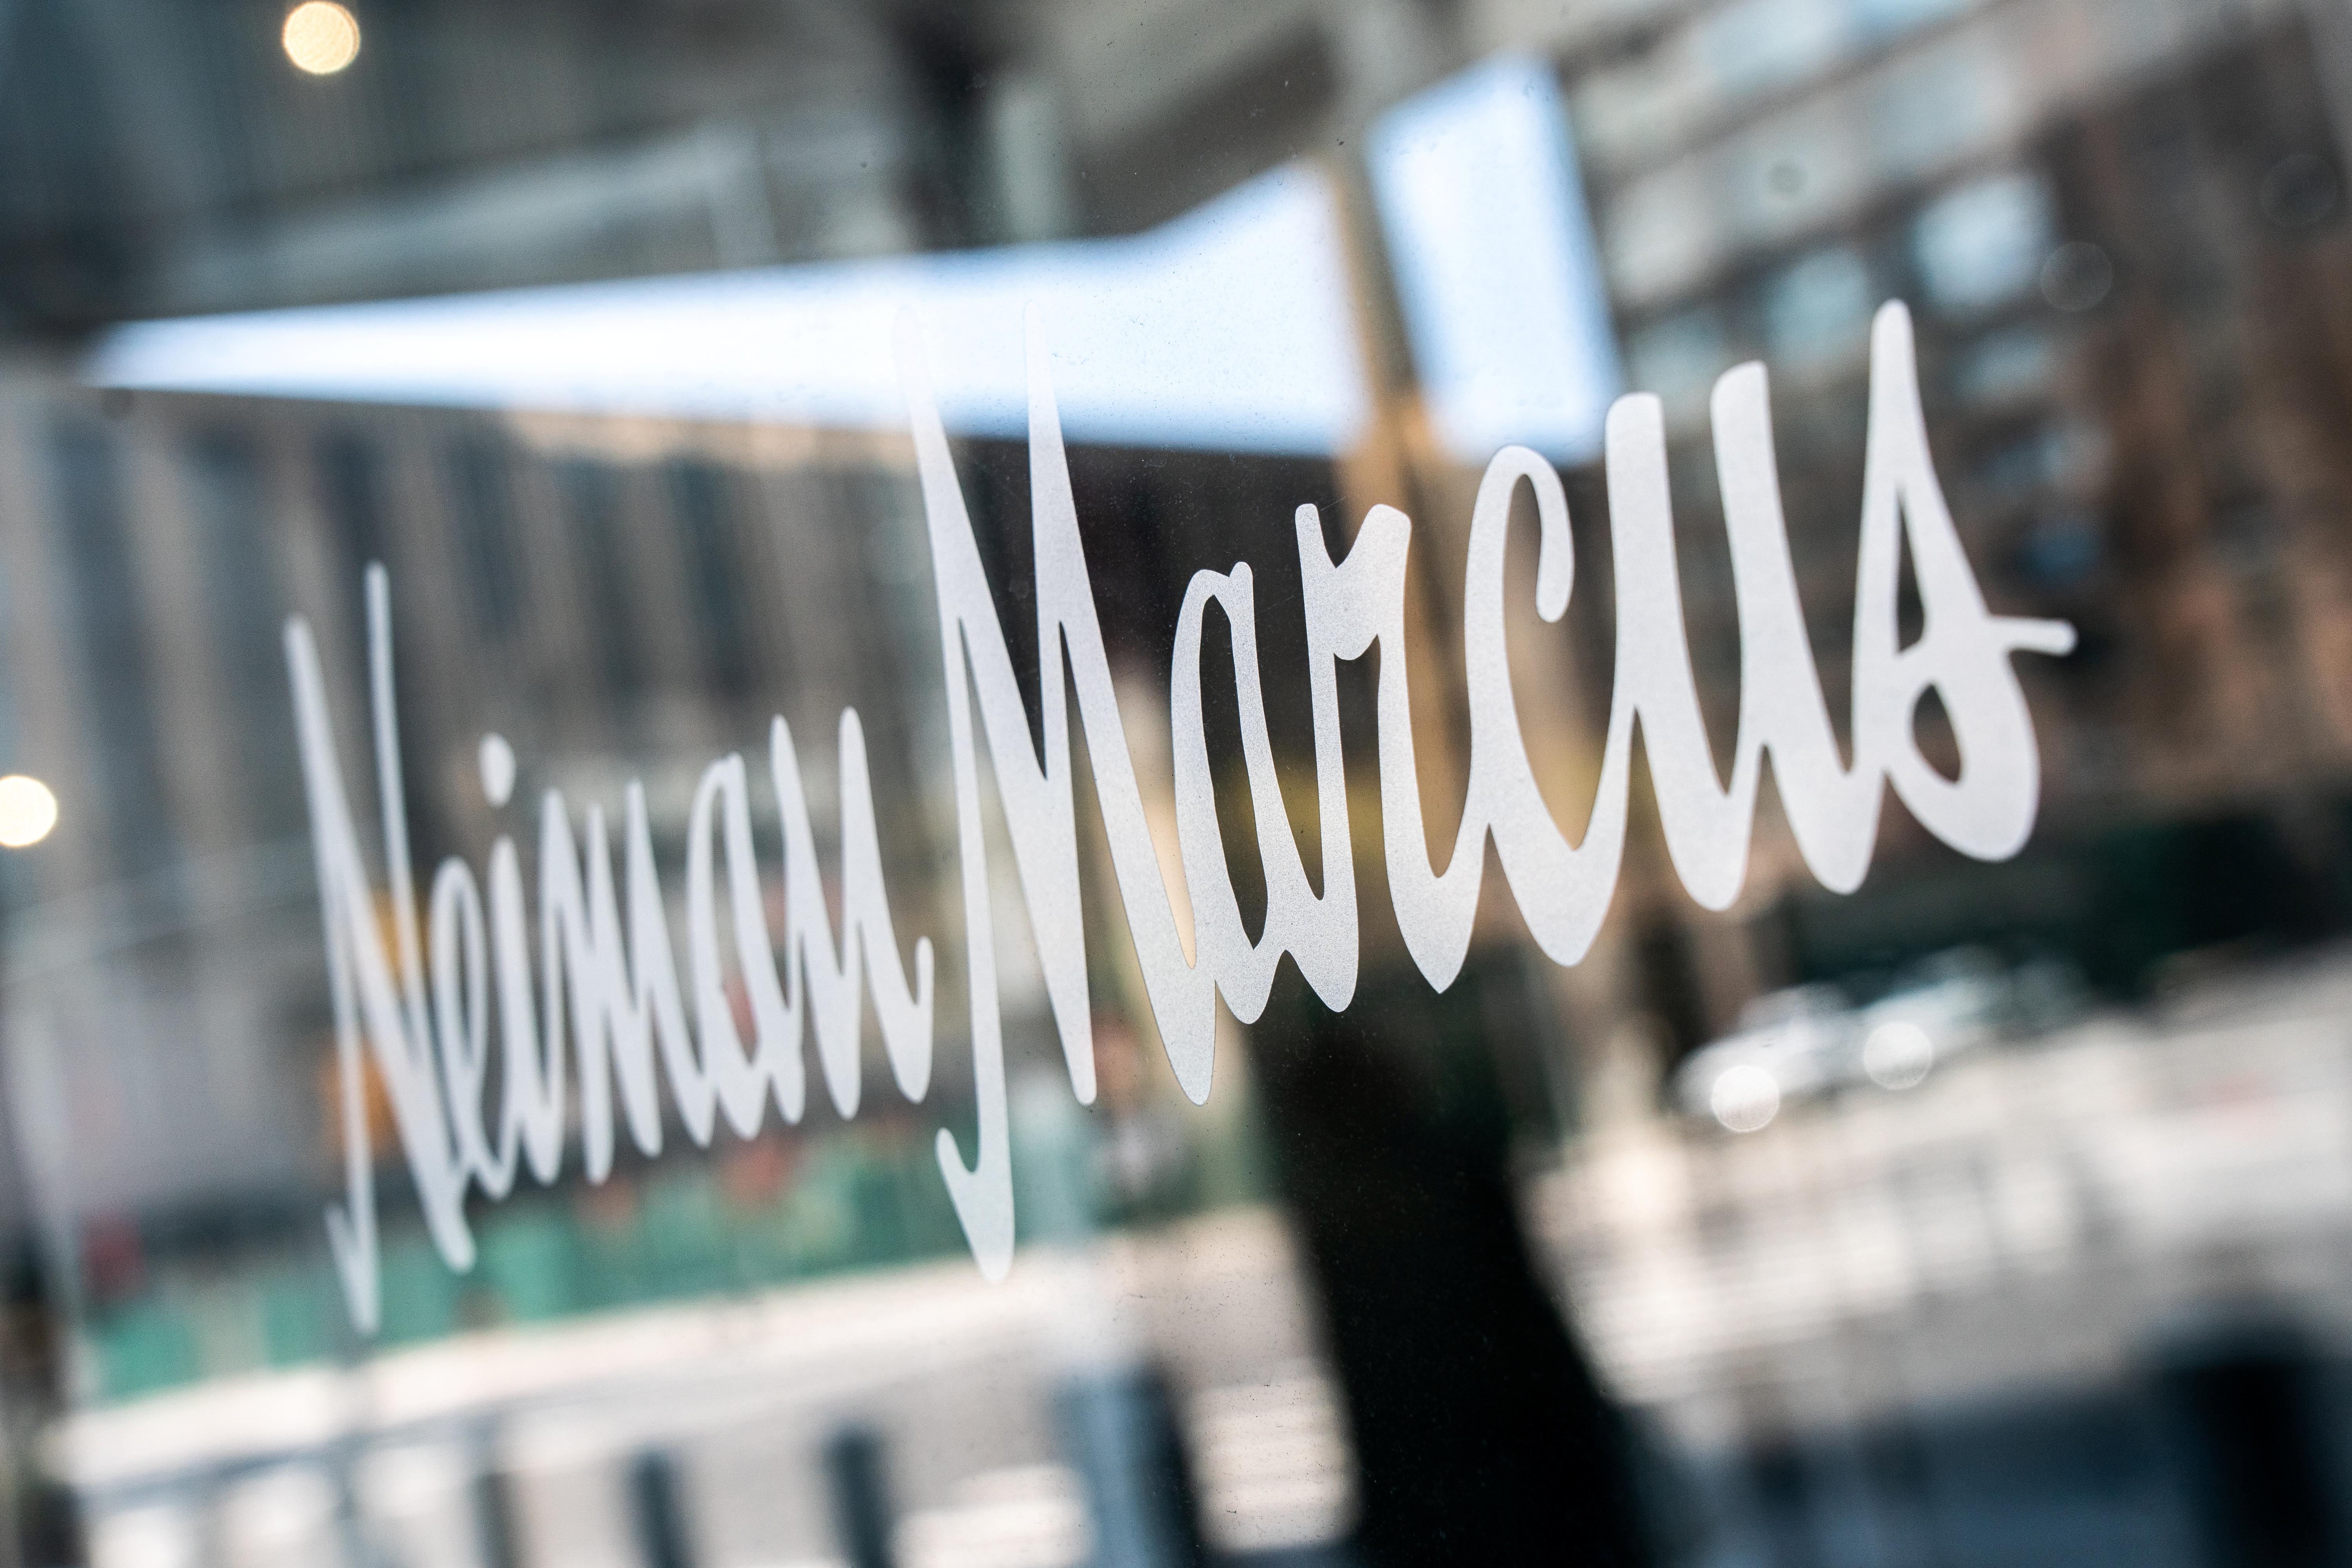 File photo: The signage outside the Neiman Marcus store is seen during the outbreak of the coronavirus disease (COVID-19) in New York City, U.S., April 19, 2020. REUTERS/Jeenah Moon